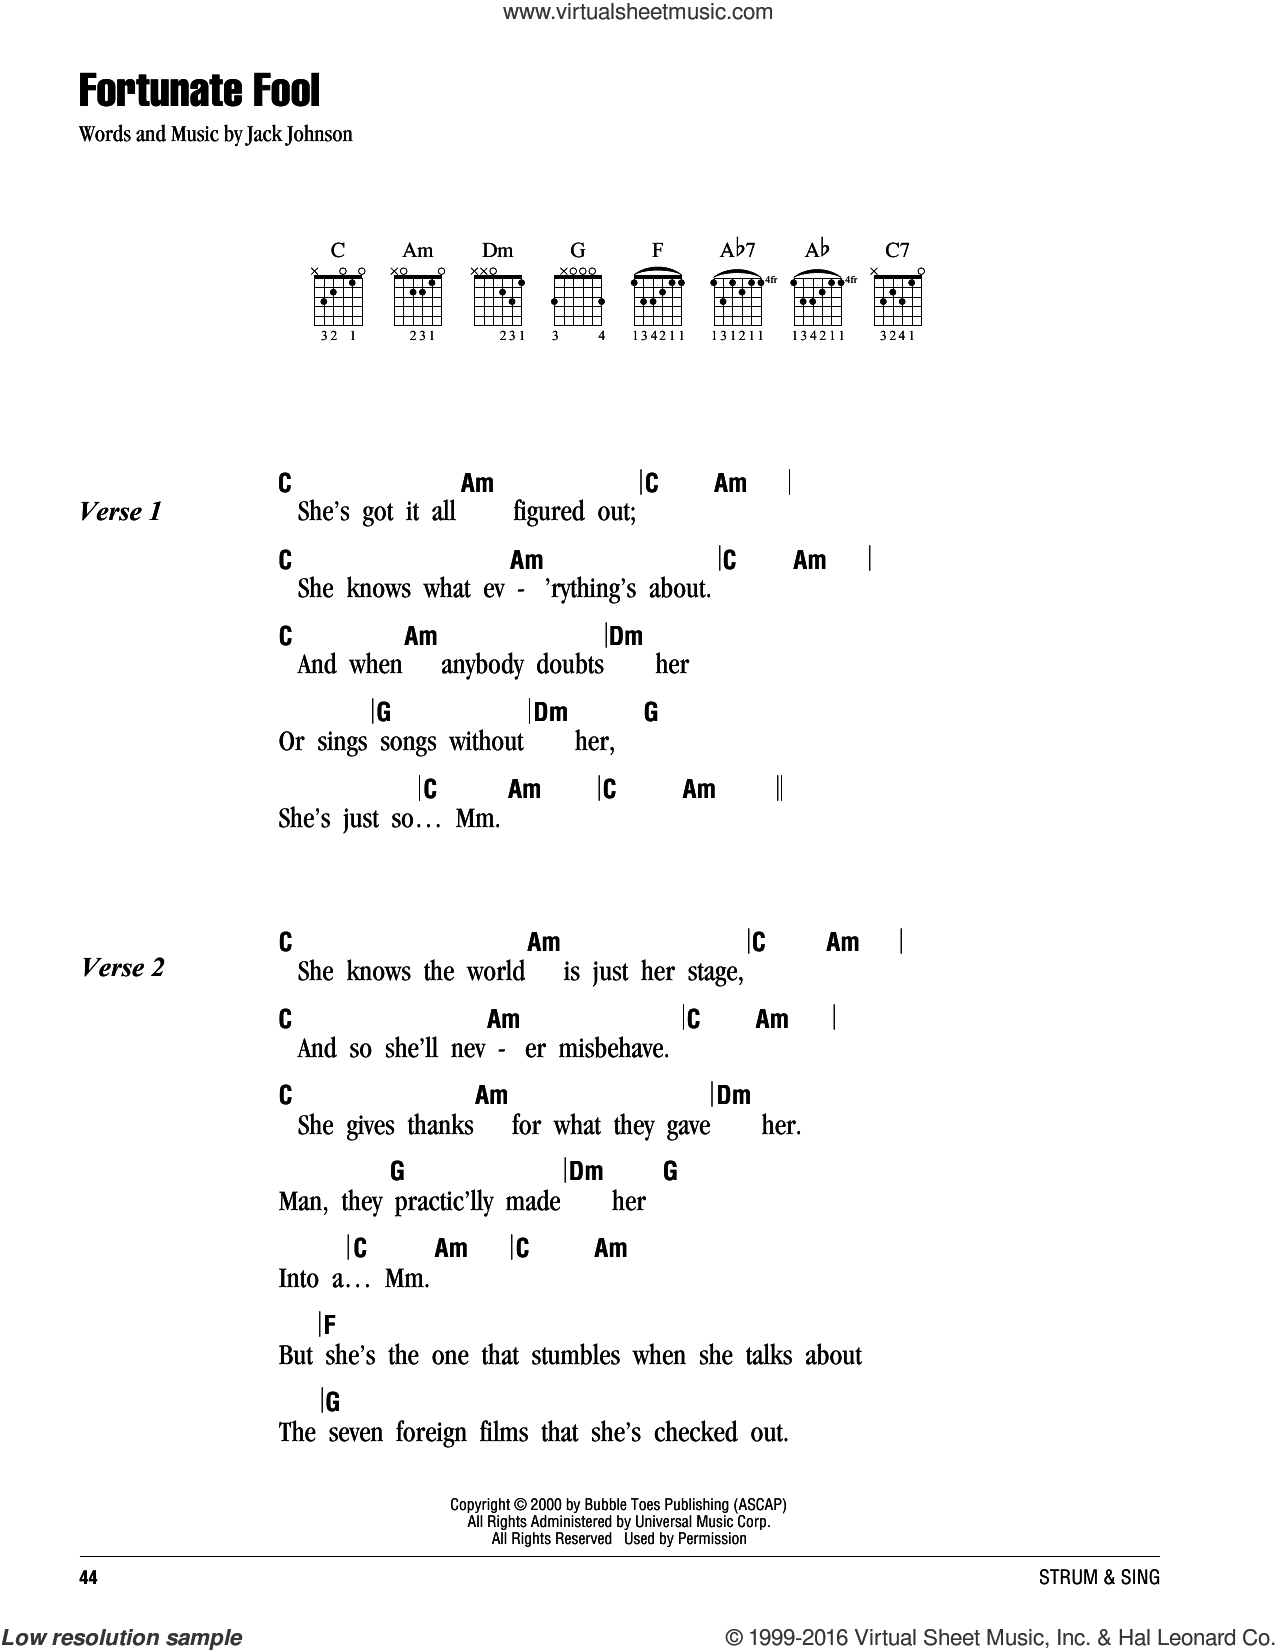 Fortunate Fool sheet music for guitar (chords) by Jack Johnson, intermediate skill level